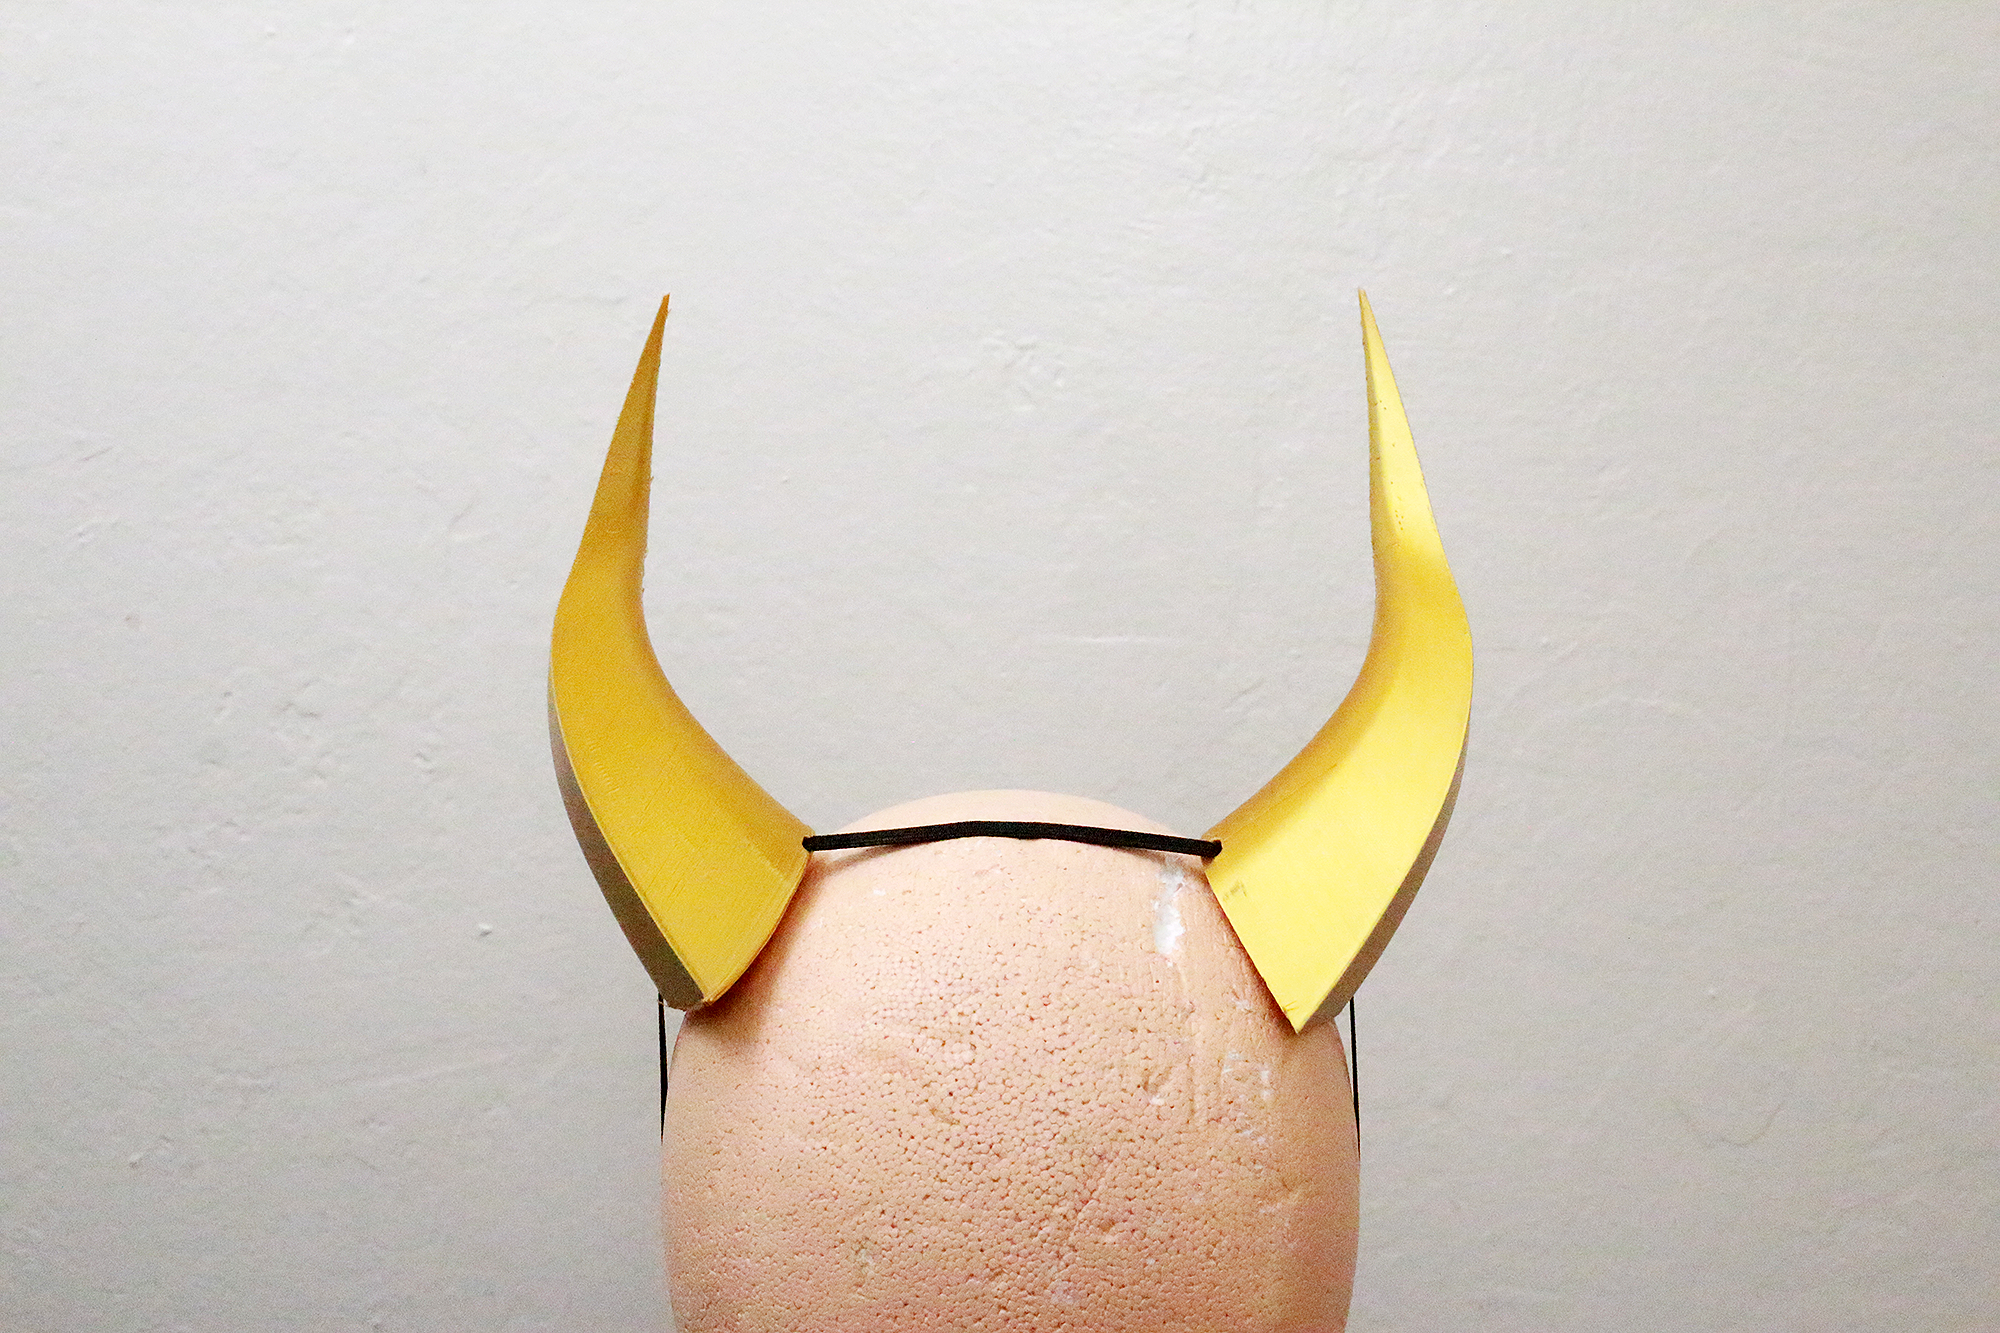 Large Wyvern 3D Printed Costume Horns